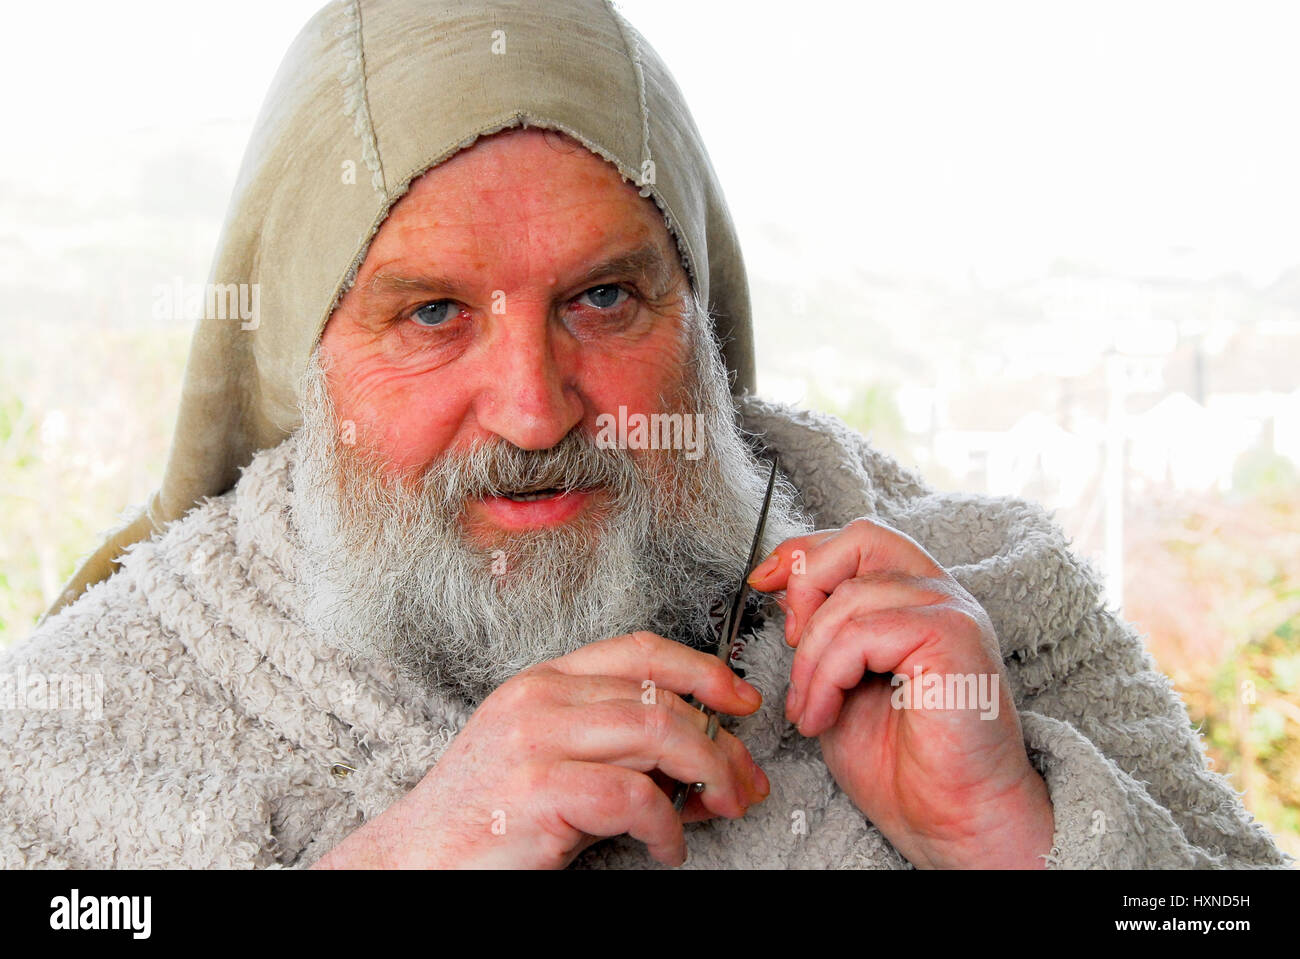 Mr Trauts plans to give his beard the 'chop' on 1st April (SEE ASSOCIATED STORY) - Stock Image